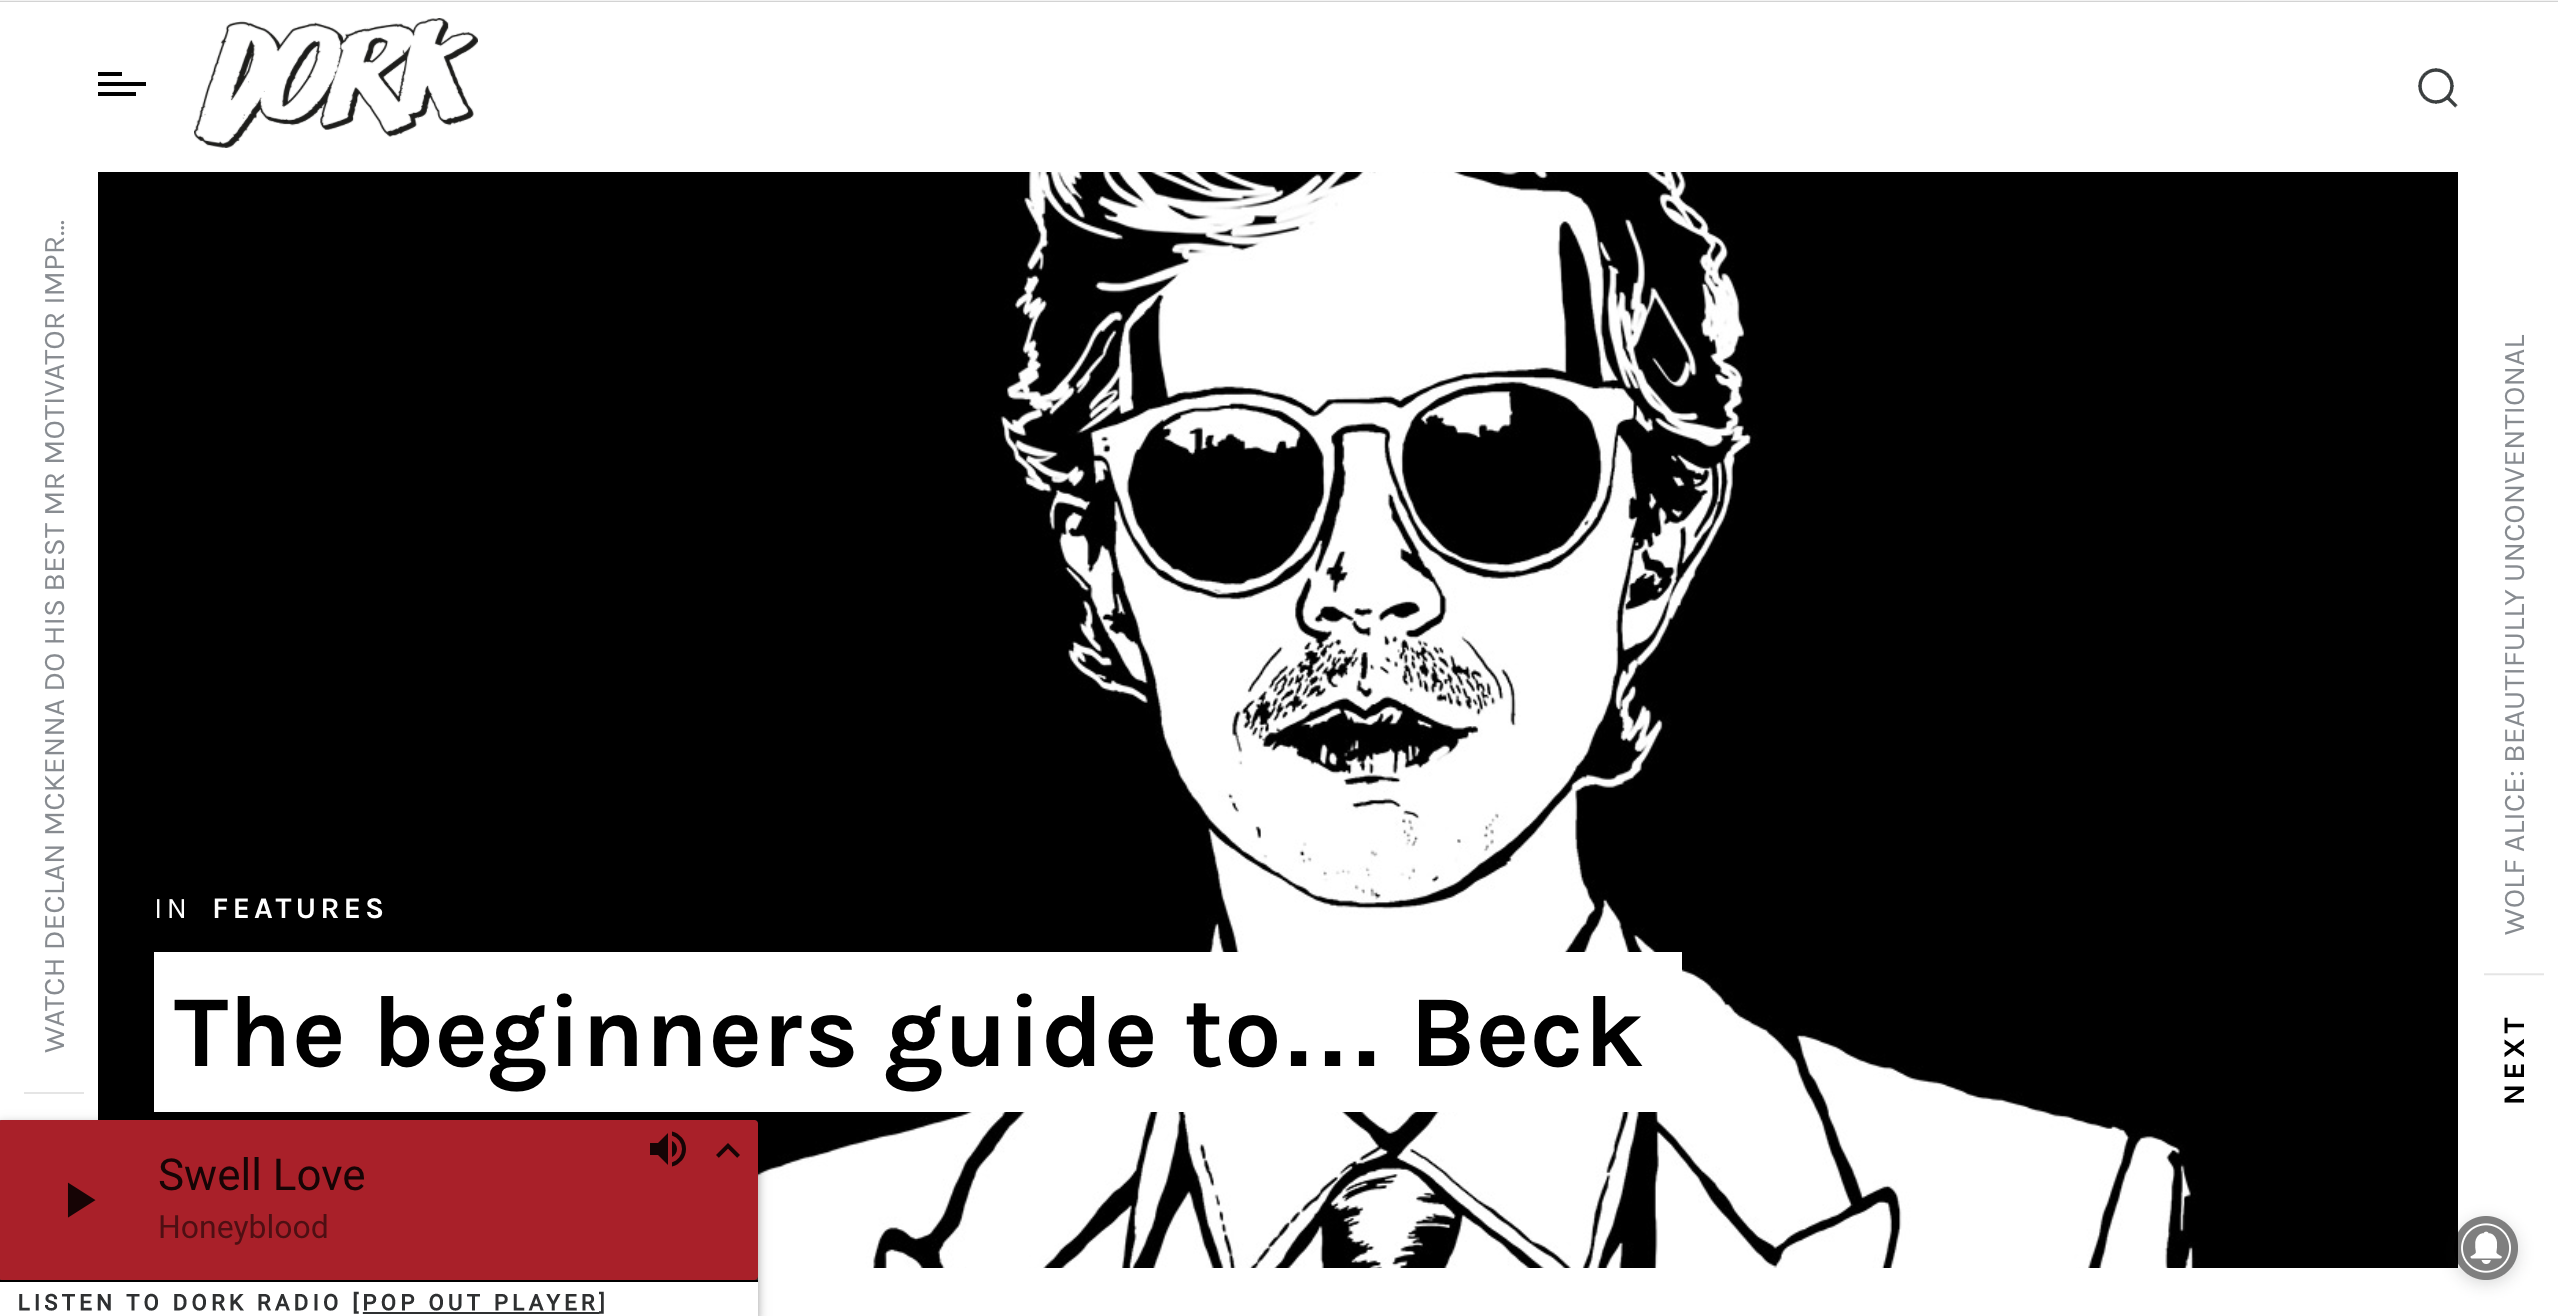 Beck for Dork Magazine